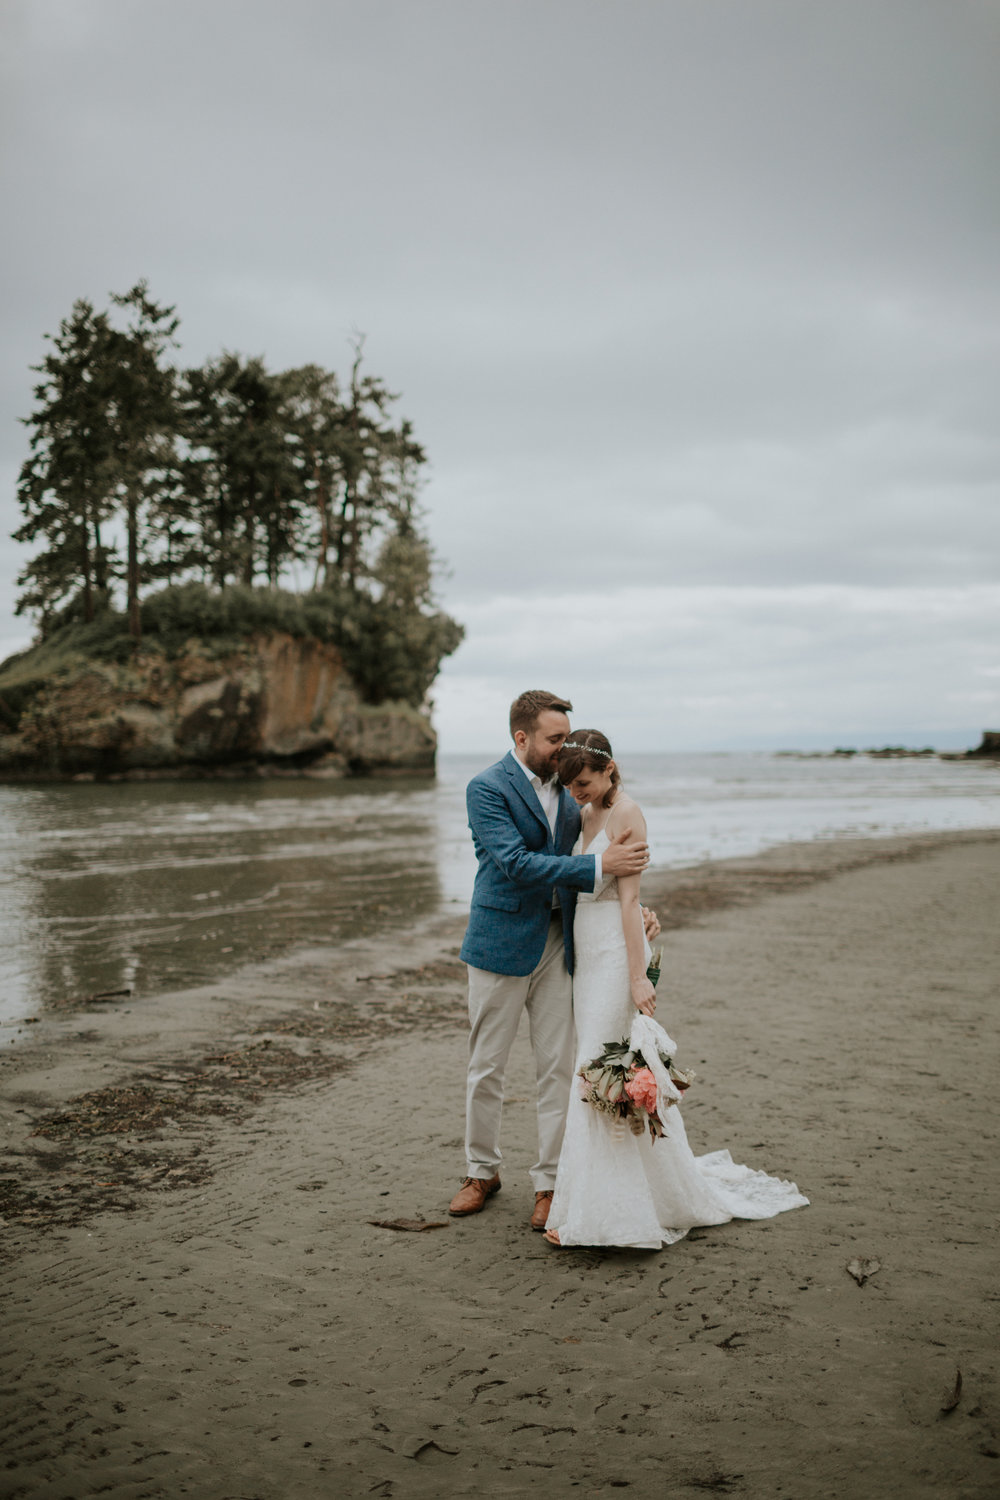 PNW-elopement-wedding-engagement-olympic national park-port angeles-hurricane ridge-lake crescent-kayla dawn photography- photographer-photography-kayladawnphoto-299.jpg